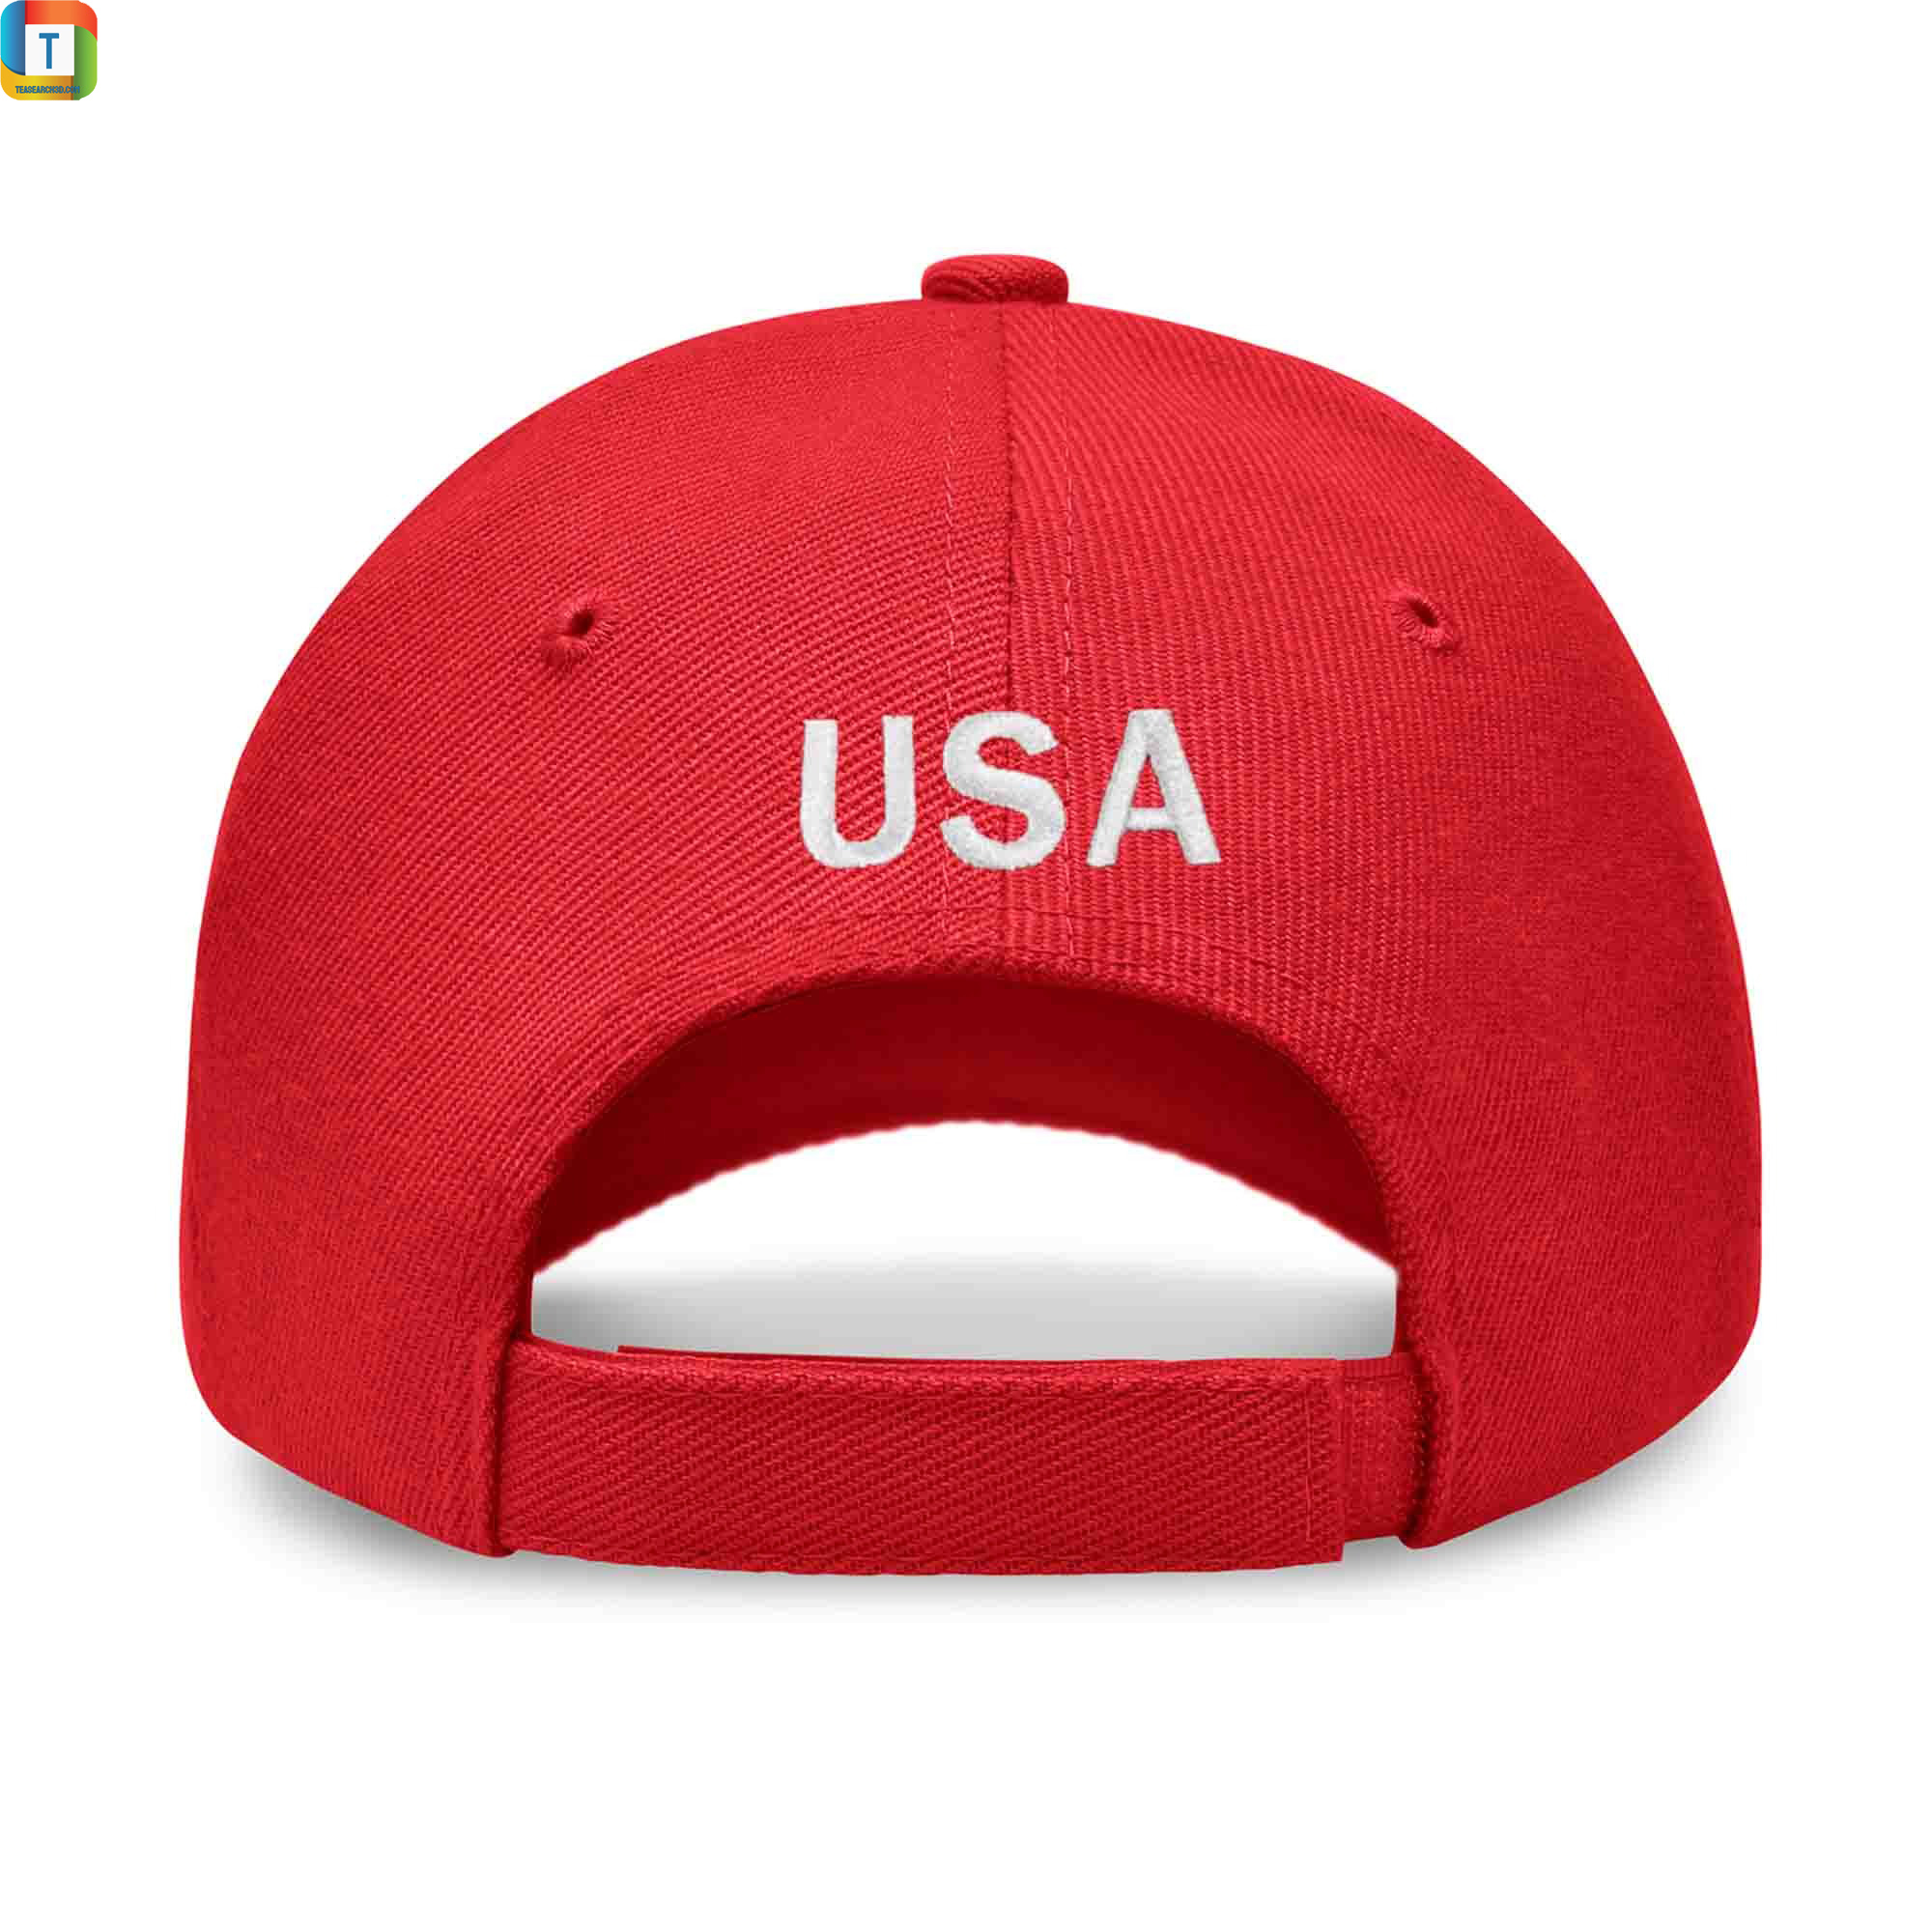 Wyoming For Trump Embroidered Hat 2